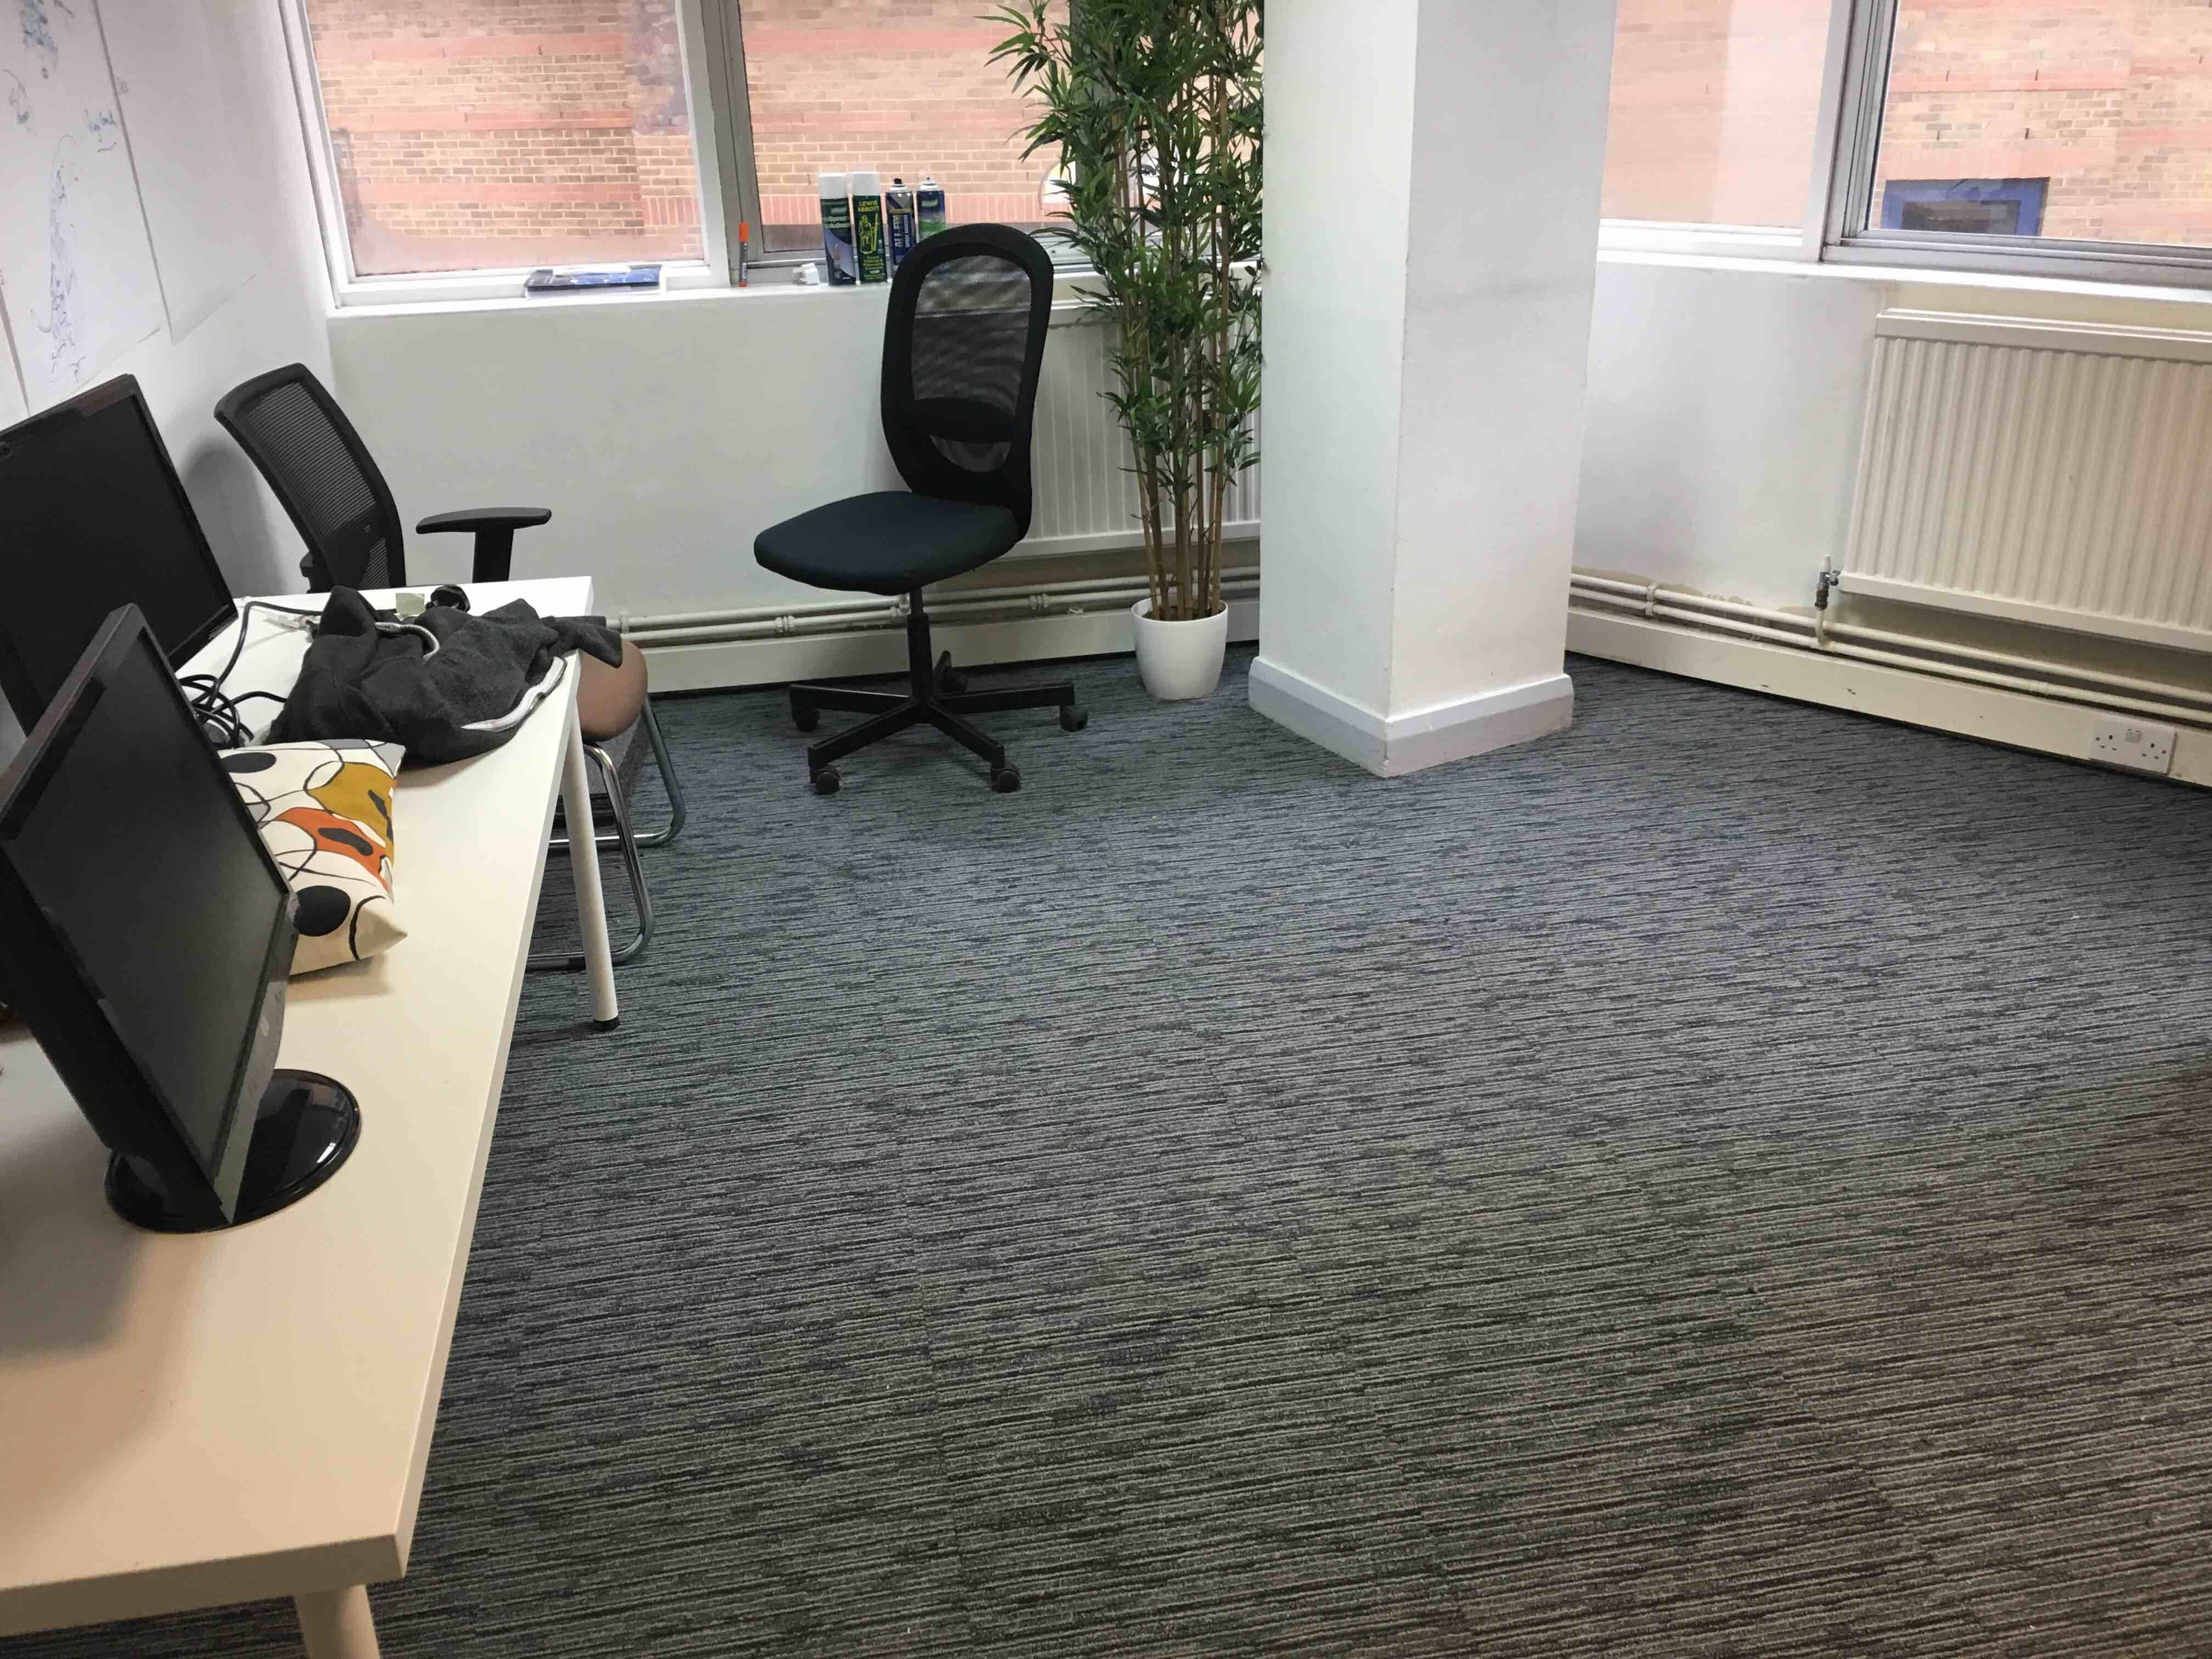 Great Striped Desso Carpet Tiles In An Office Carpet Fitters Carpet Tiles Carpet